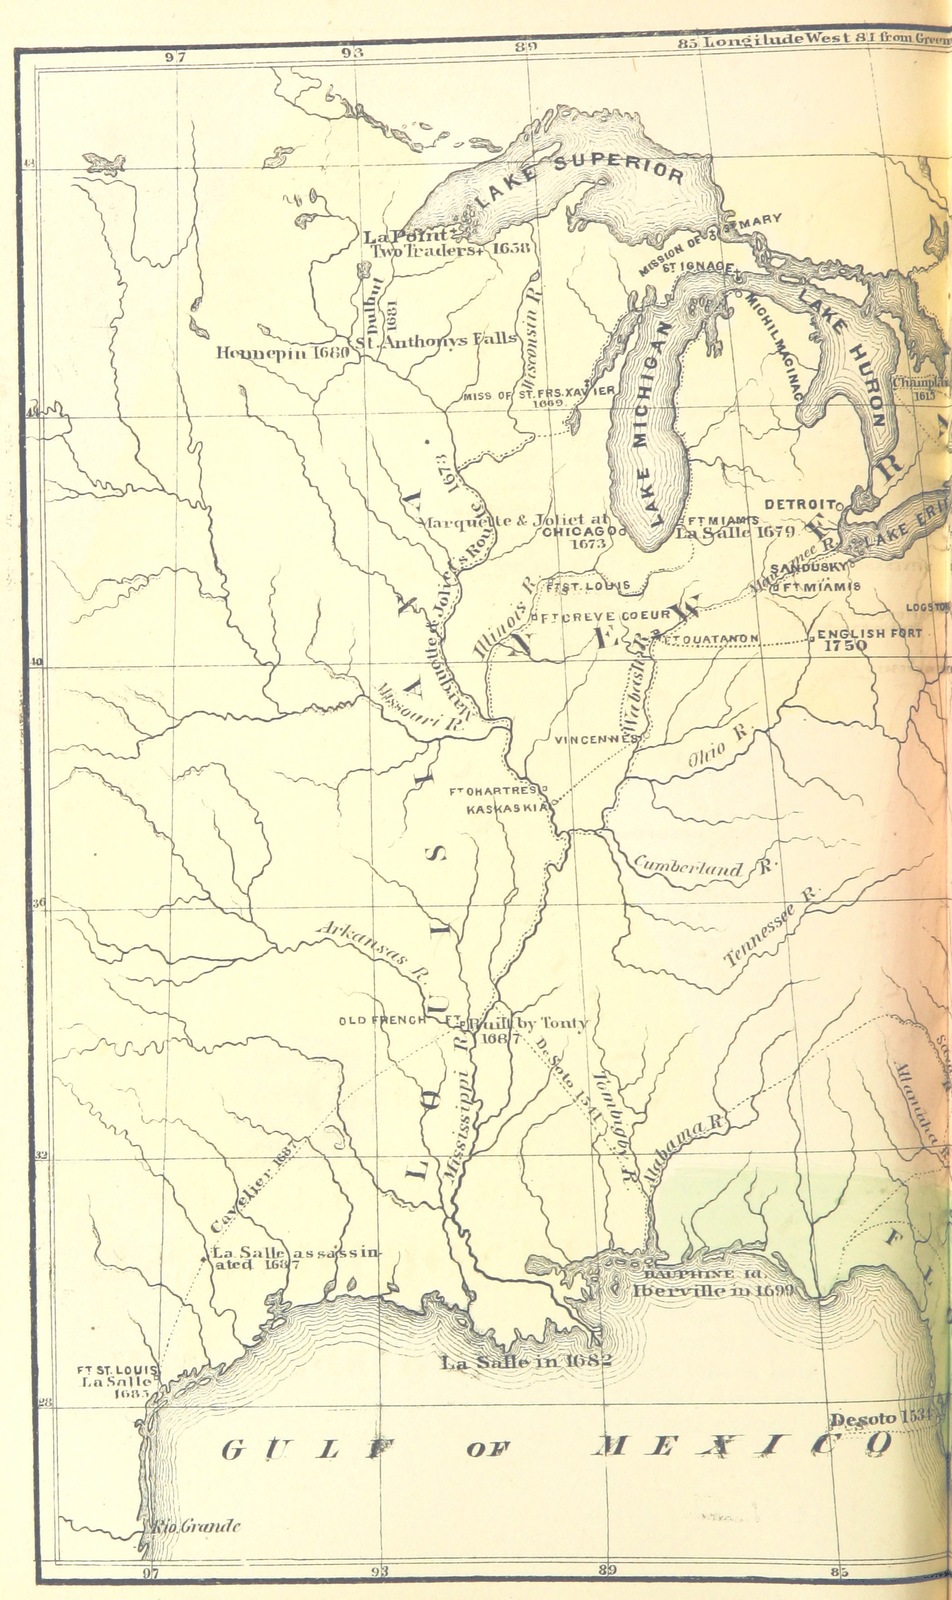 Northwest Chicago Map.Map From The Discovery And Conquests Of The Northwest Including